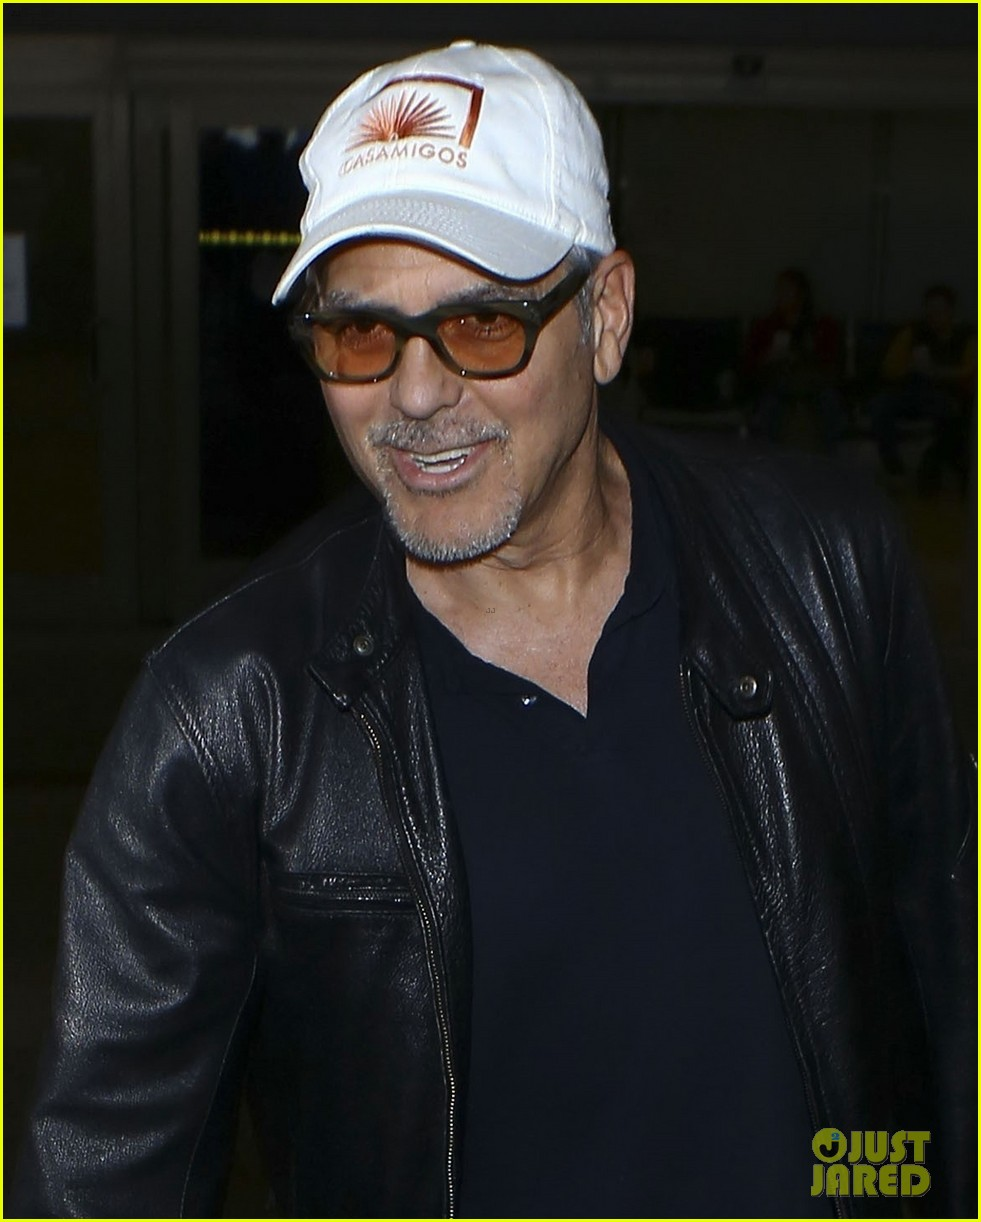 George Clooney back in the US July 2017 George-clooney-wraps-up-italy-trip-in-leather-jacket-and-casamigos-hat-04